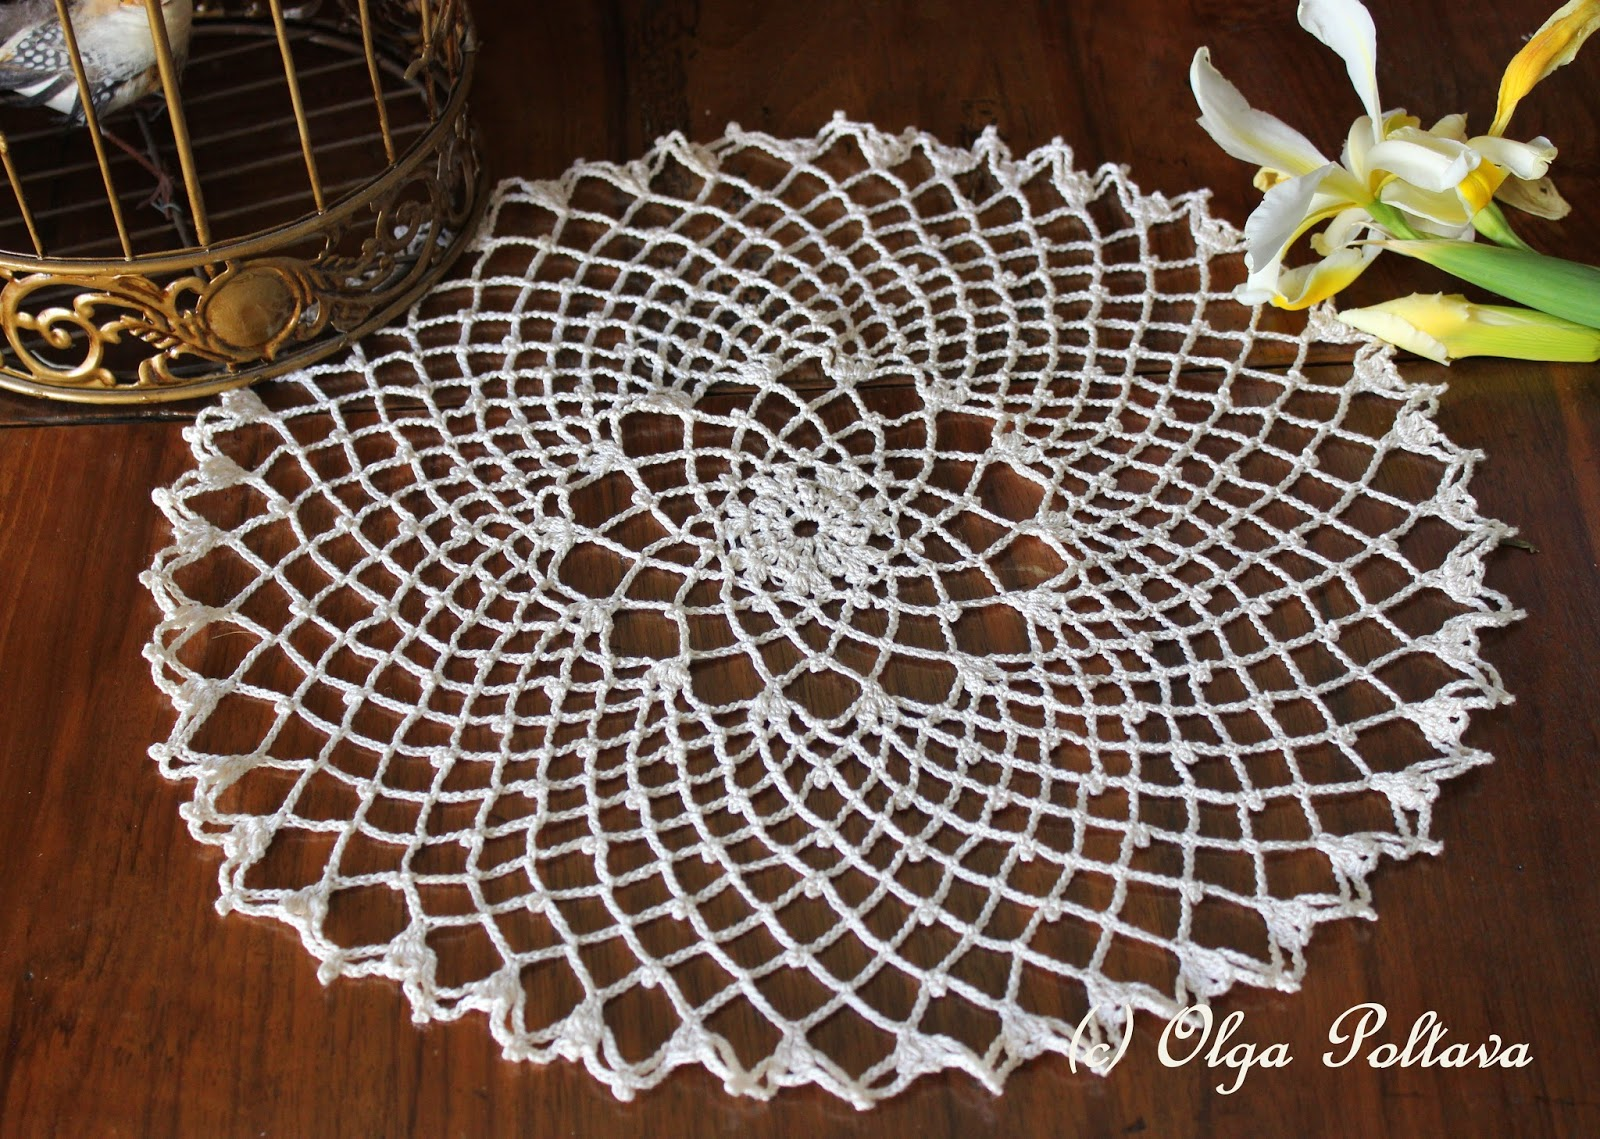 Crochet Doily Patterns Free For Beginners : Lacy Crochet: Clusters, Chains and Picots Doily, My Free ...